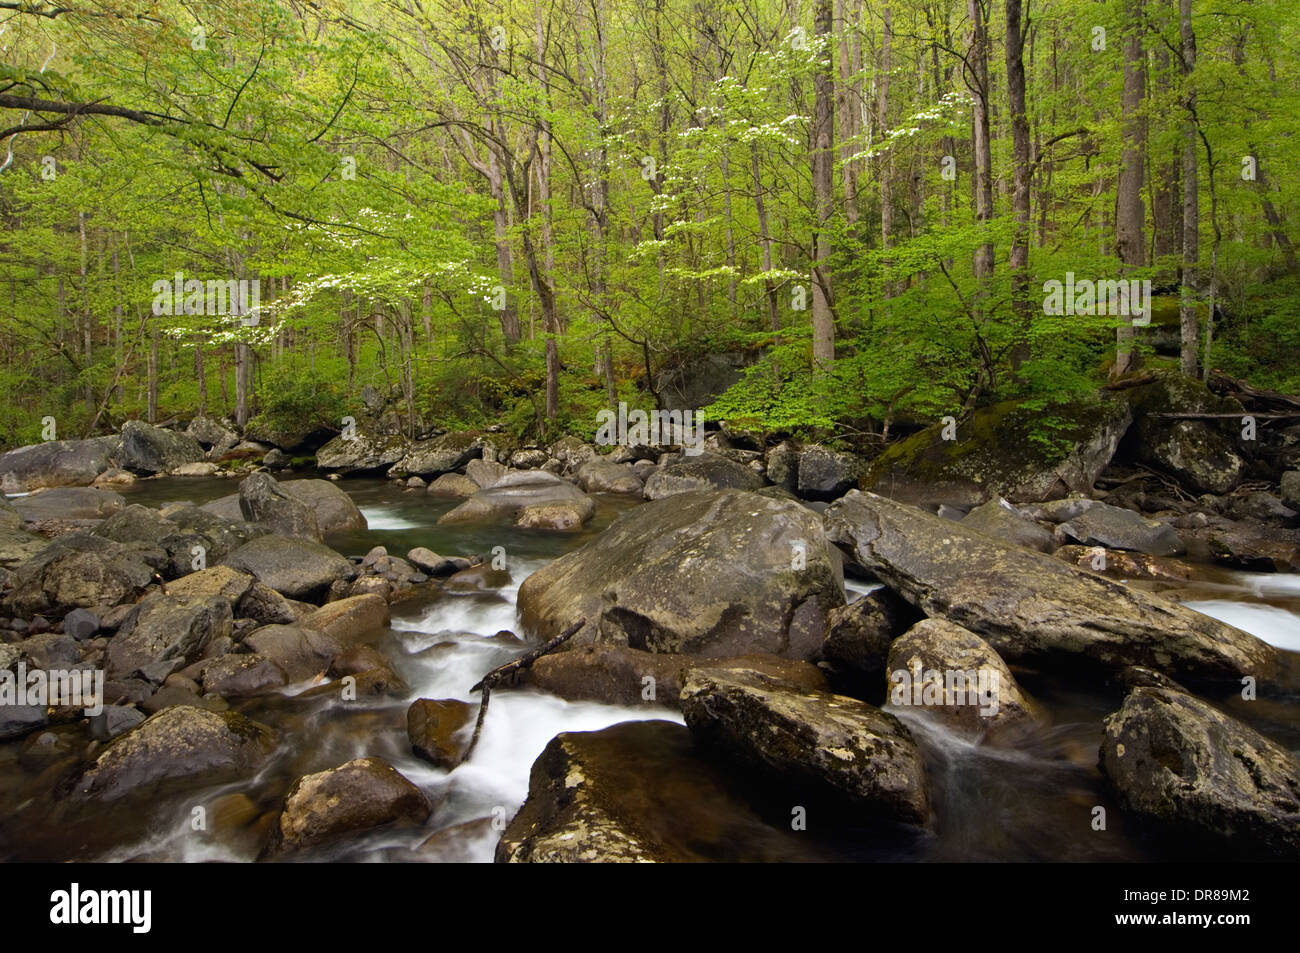 Middle Prong of the Little Pigeon River in the Great Smoky Mountains National Park in Tennessee - Stock Image